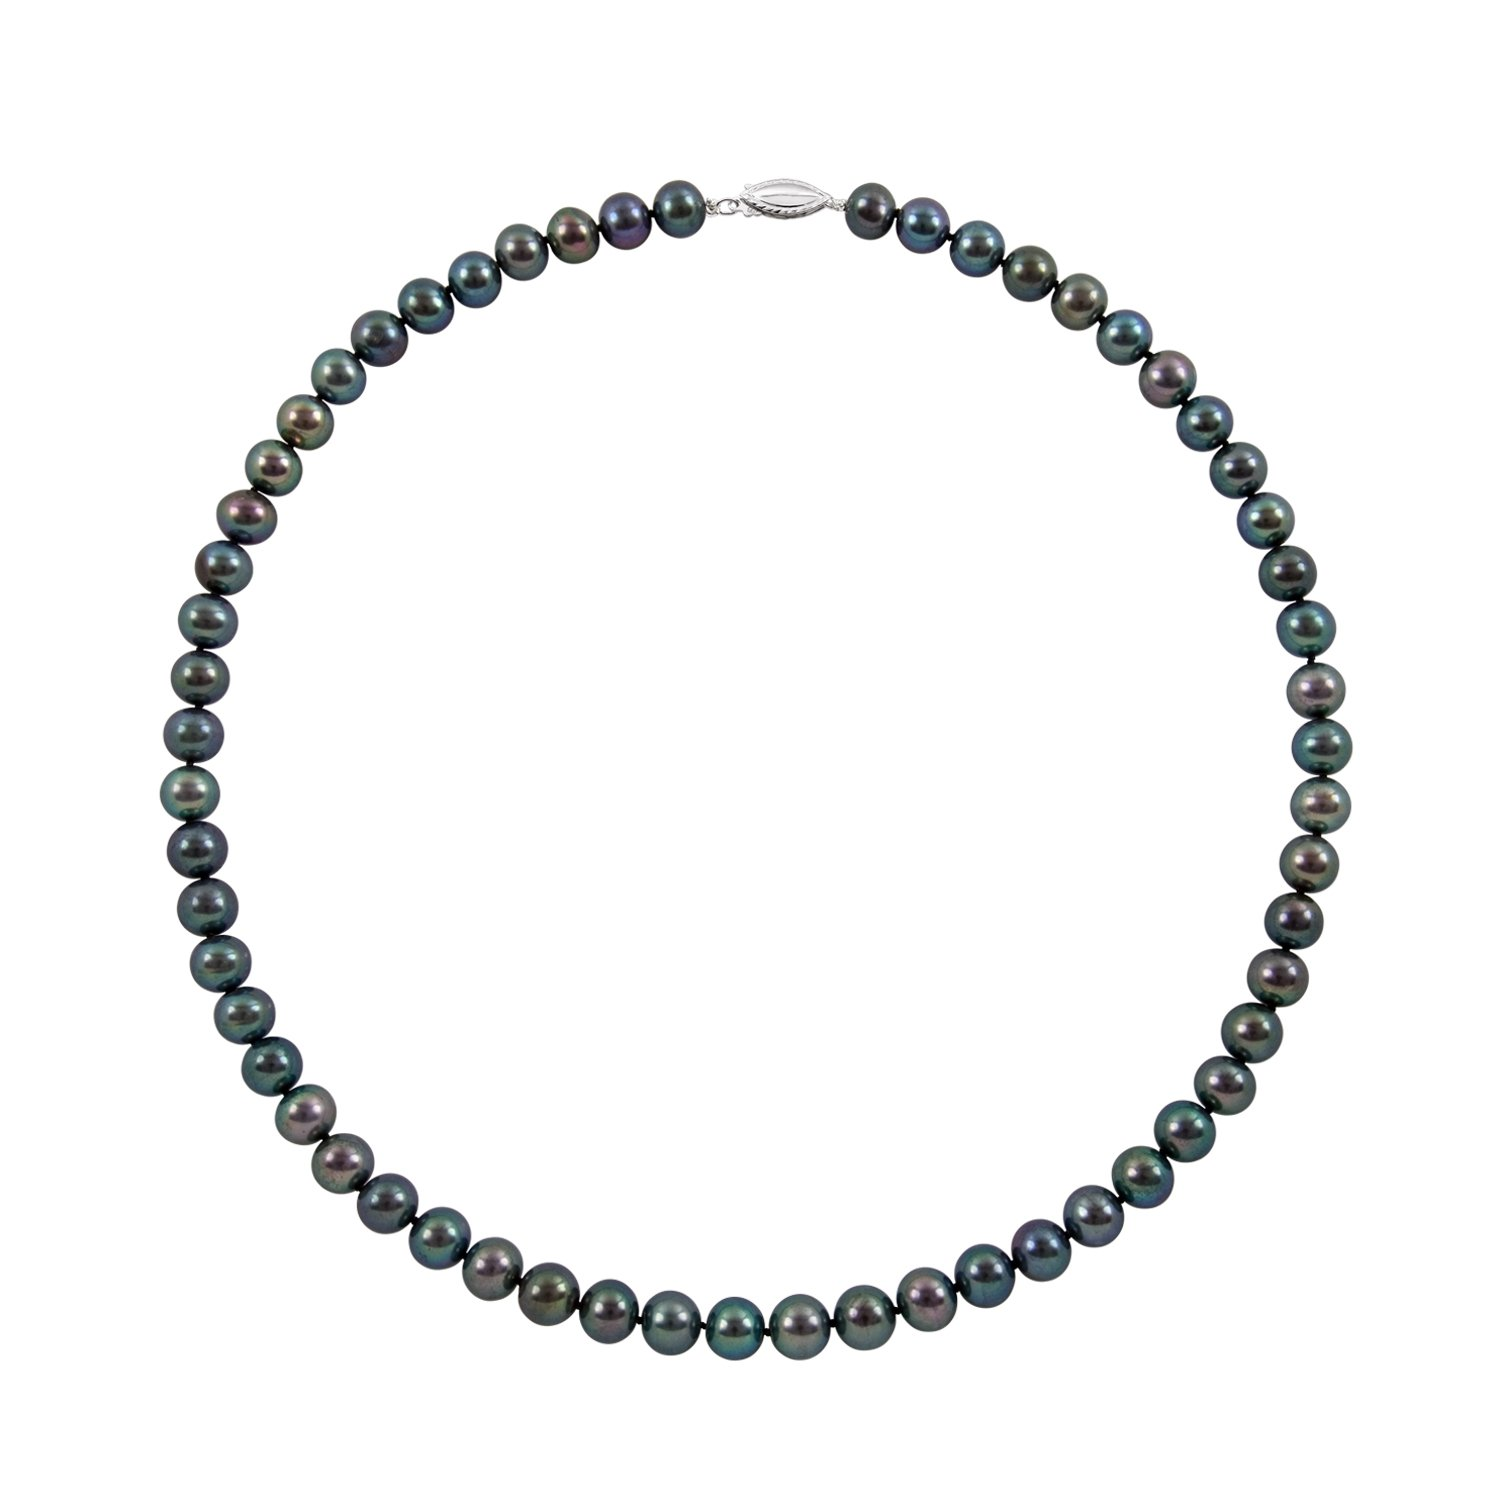 Sterling Silver 6.0-7.0mm Black Cultured Freshwater Pearl Strand Necklace,24''